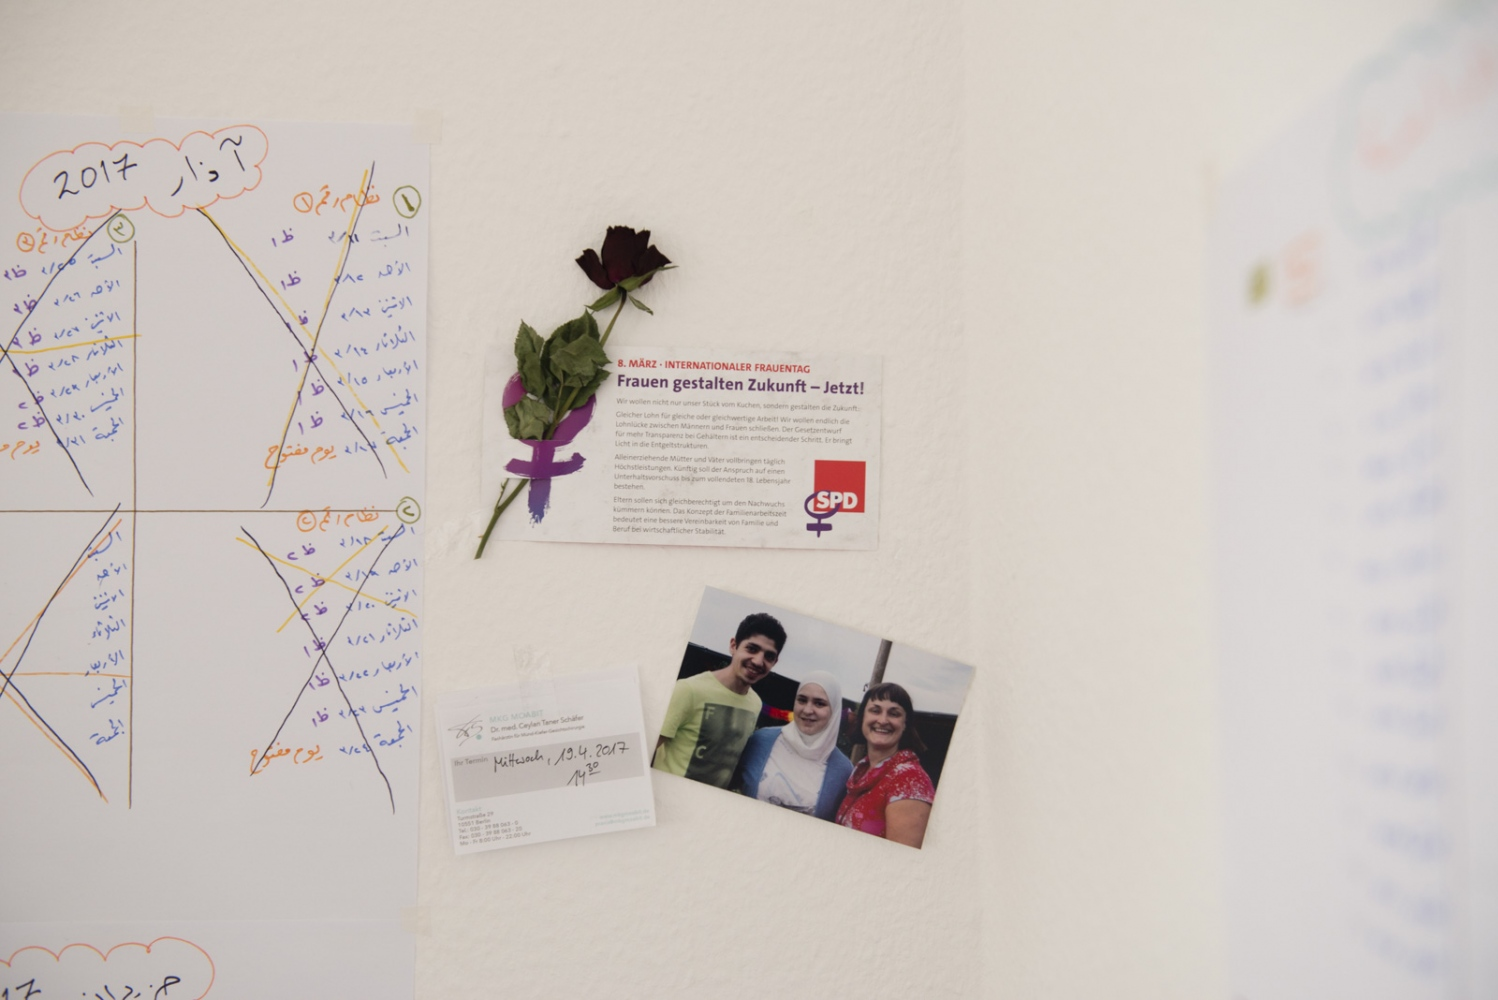 BERLIN | GERMANY | 2017-04-11 | Notes, photos and a studying calendar on the wall of Amani and Maher's study room. Amani (32) had to flee Damascus alongside his best friend at the time, Maher (24), to leave a troubled past behind in Damascus. Maher propose to Amani despite the unusual age gap and her previous marriage and the couple got married in Istanbul. Upon arriving in Germany, Amani restored a new life and gave birth to Kareem in Nov 2016. The couple are now settled in Lichtenberg, Berlin.